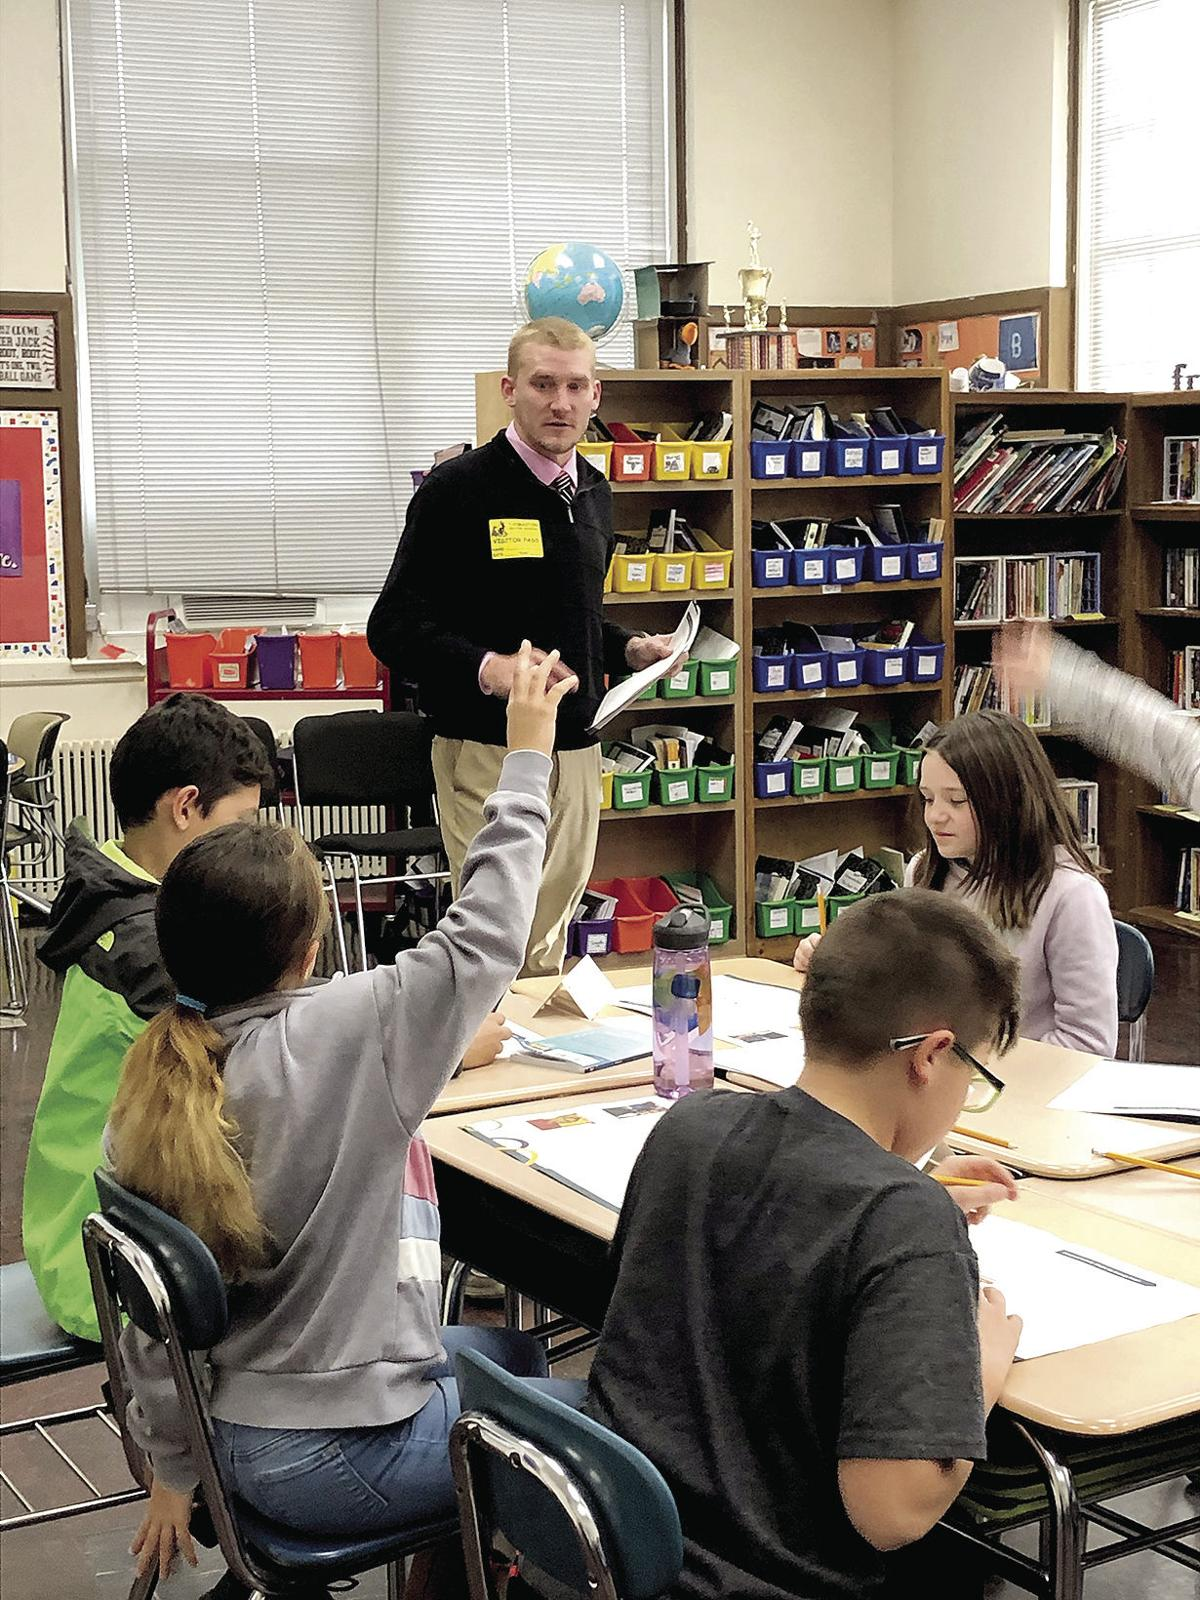 Thomaston's Center School: JA for a Day Event Offered